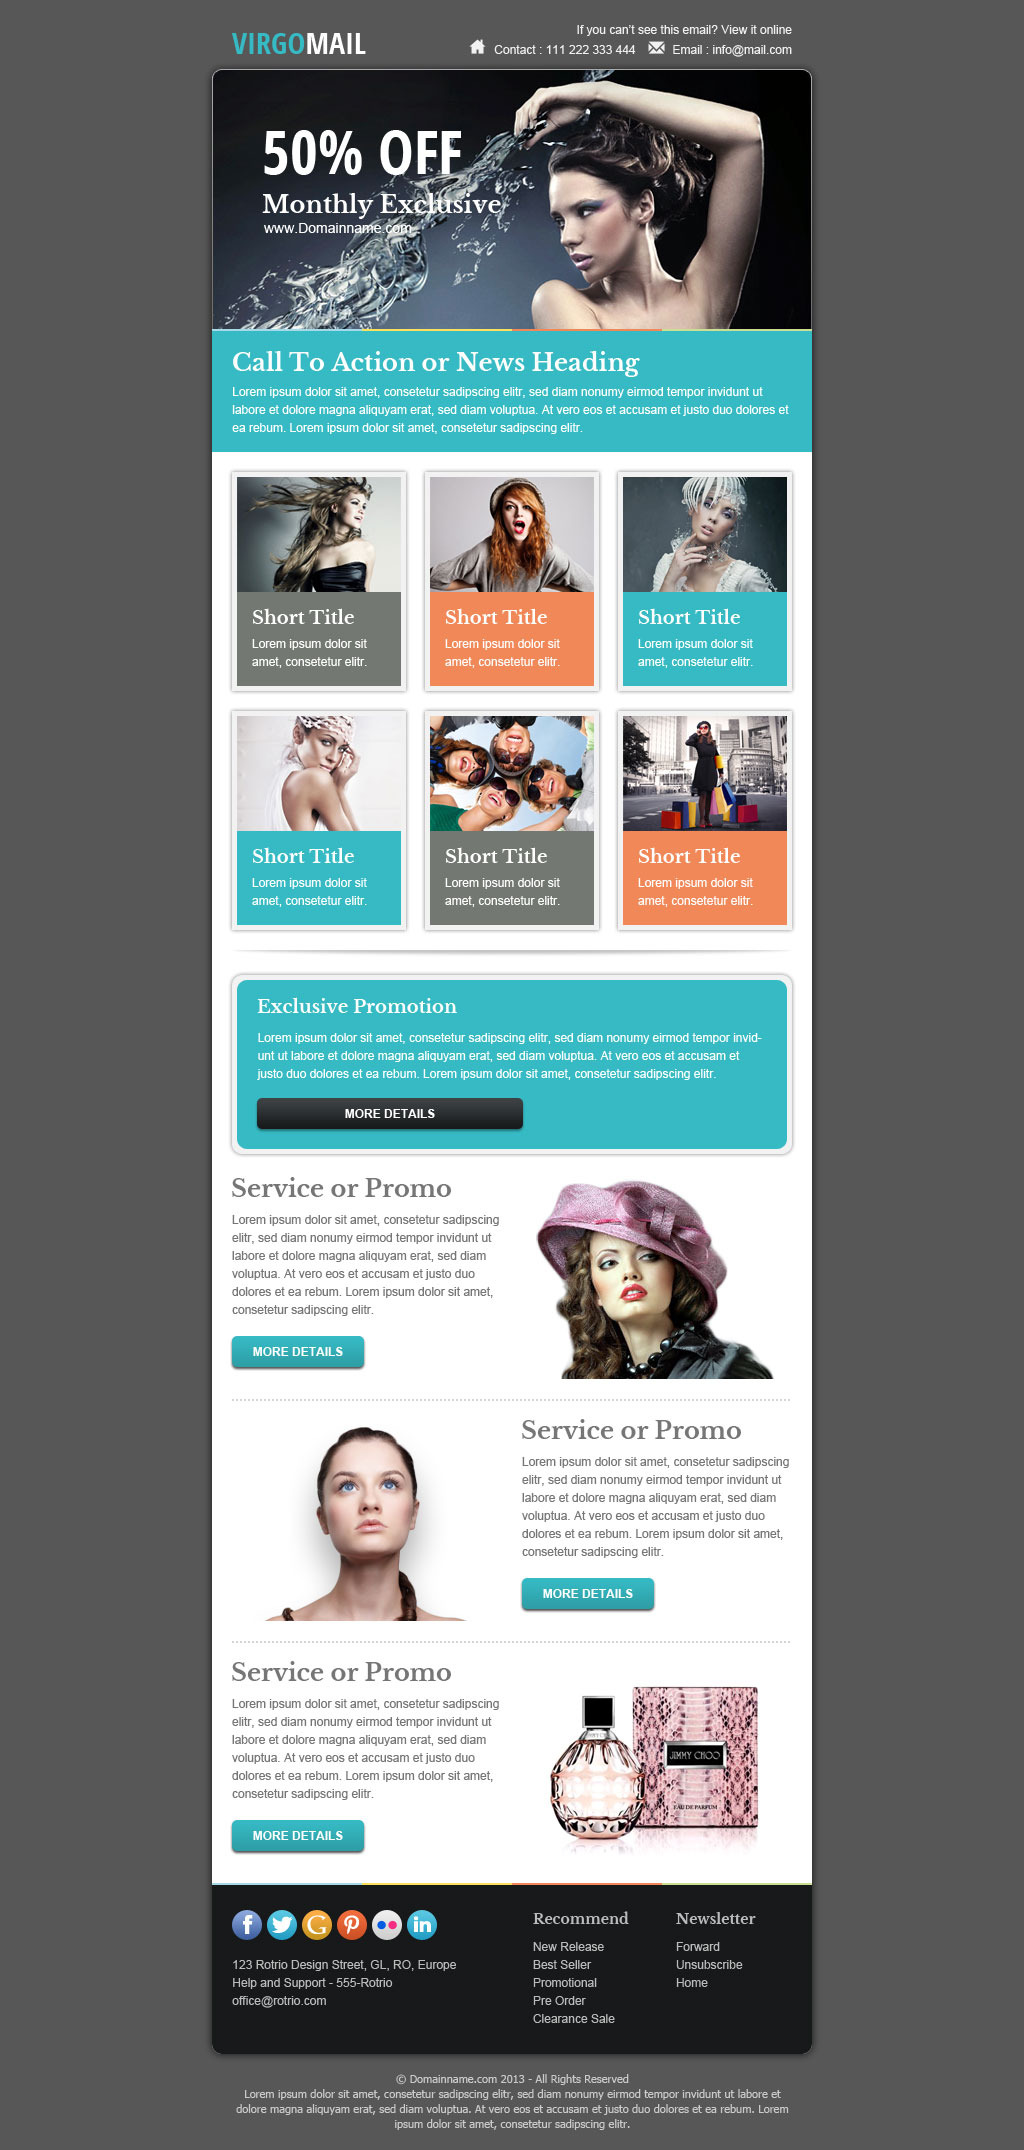 Virgomail email marketing newsletter template by for Free promotional email templates